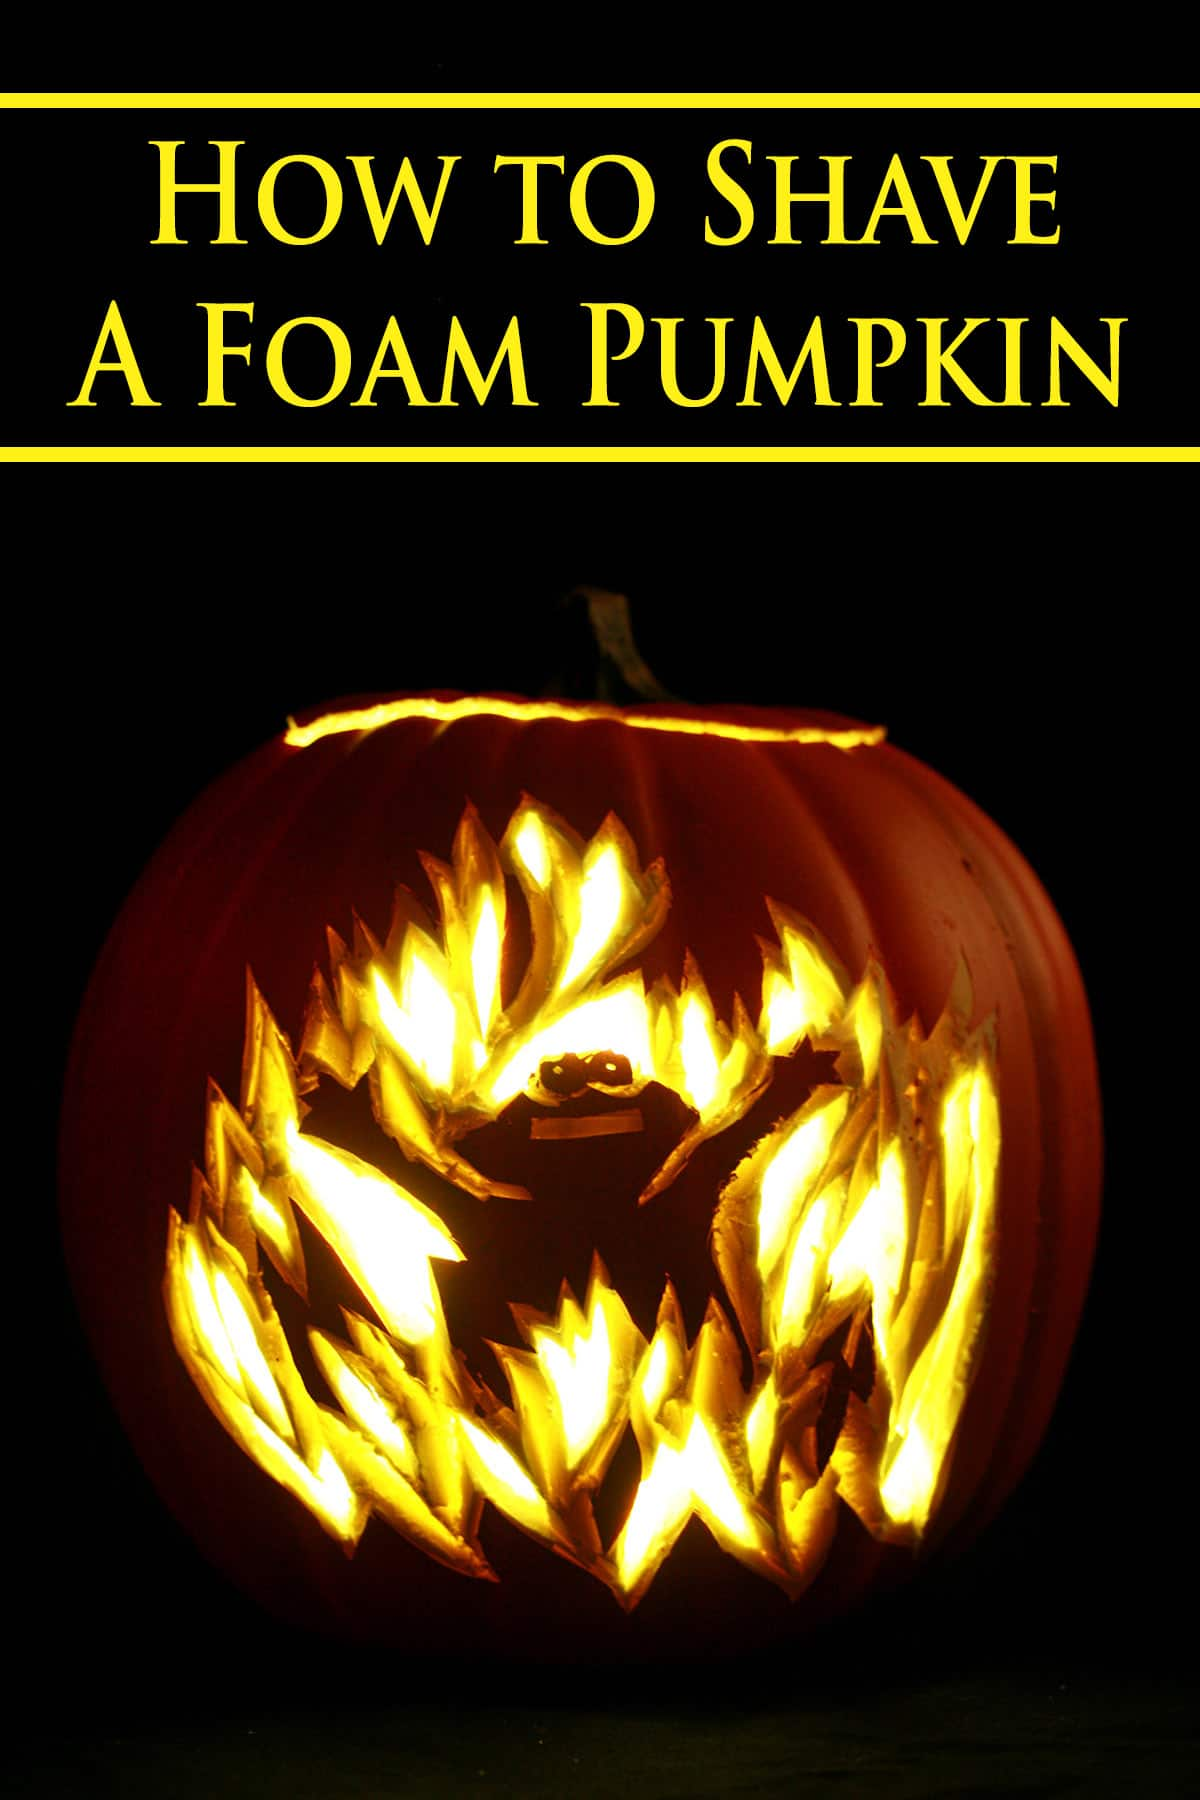 A foam pumpkin shaved to look like Elmo in fire. Yellow text says how to shave a foam pumpkin.